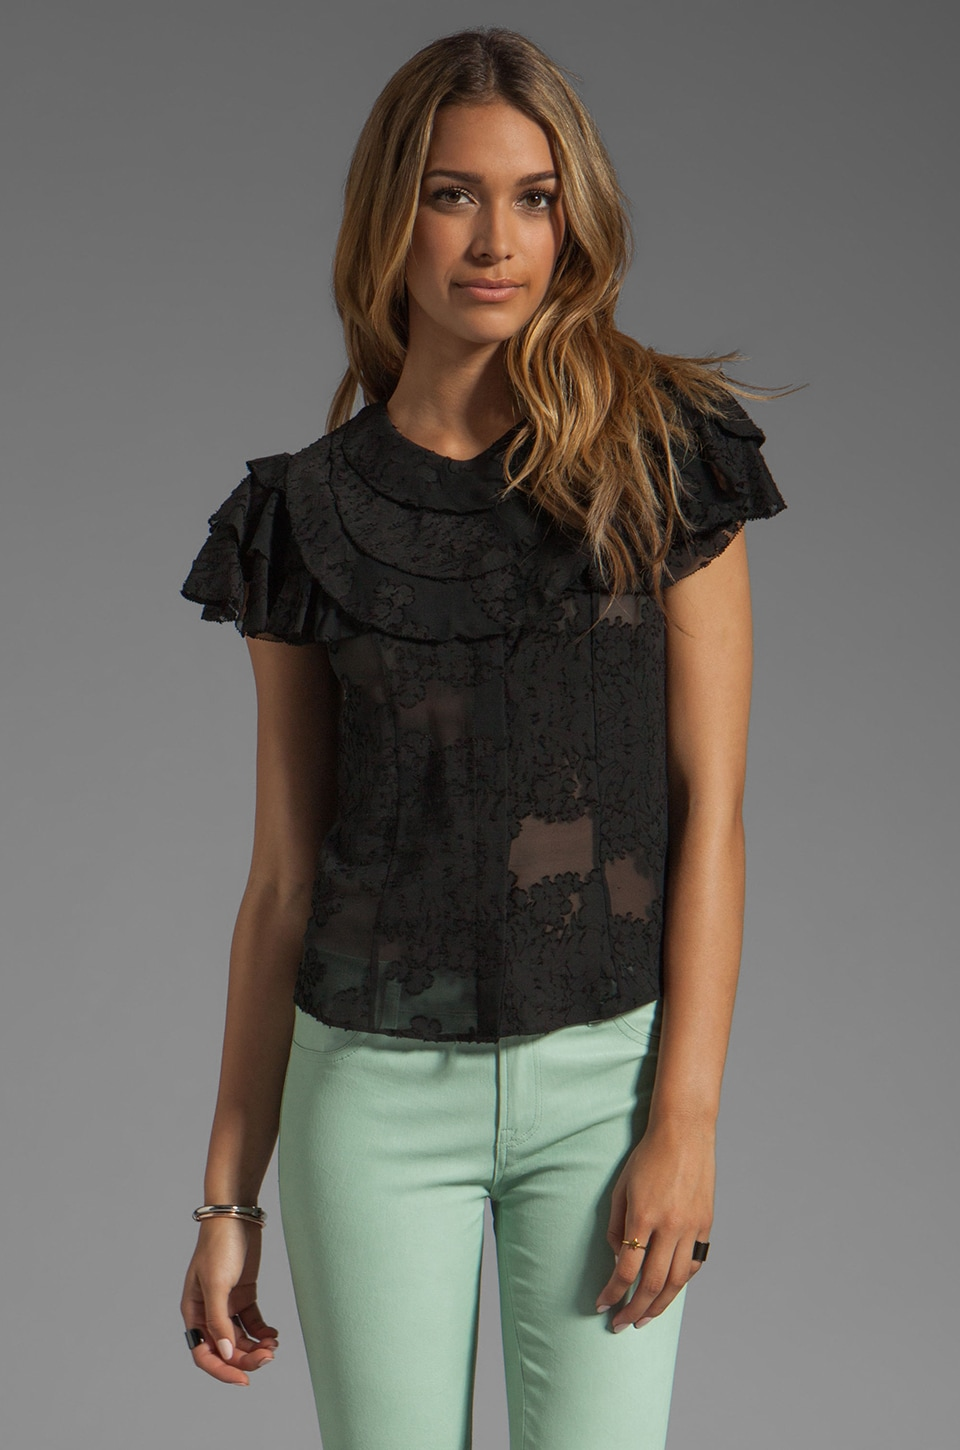 Z Spoke by Zac Posen Ruffle Blouse in Black